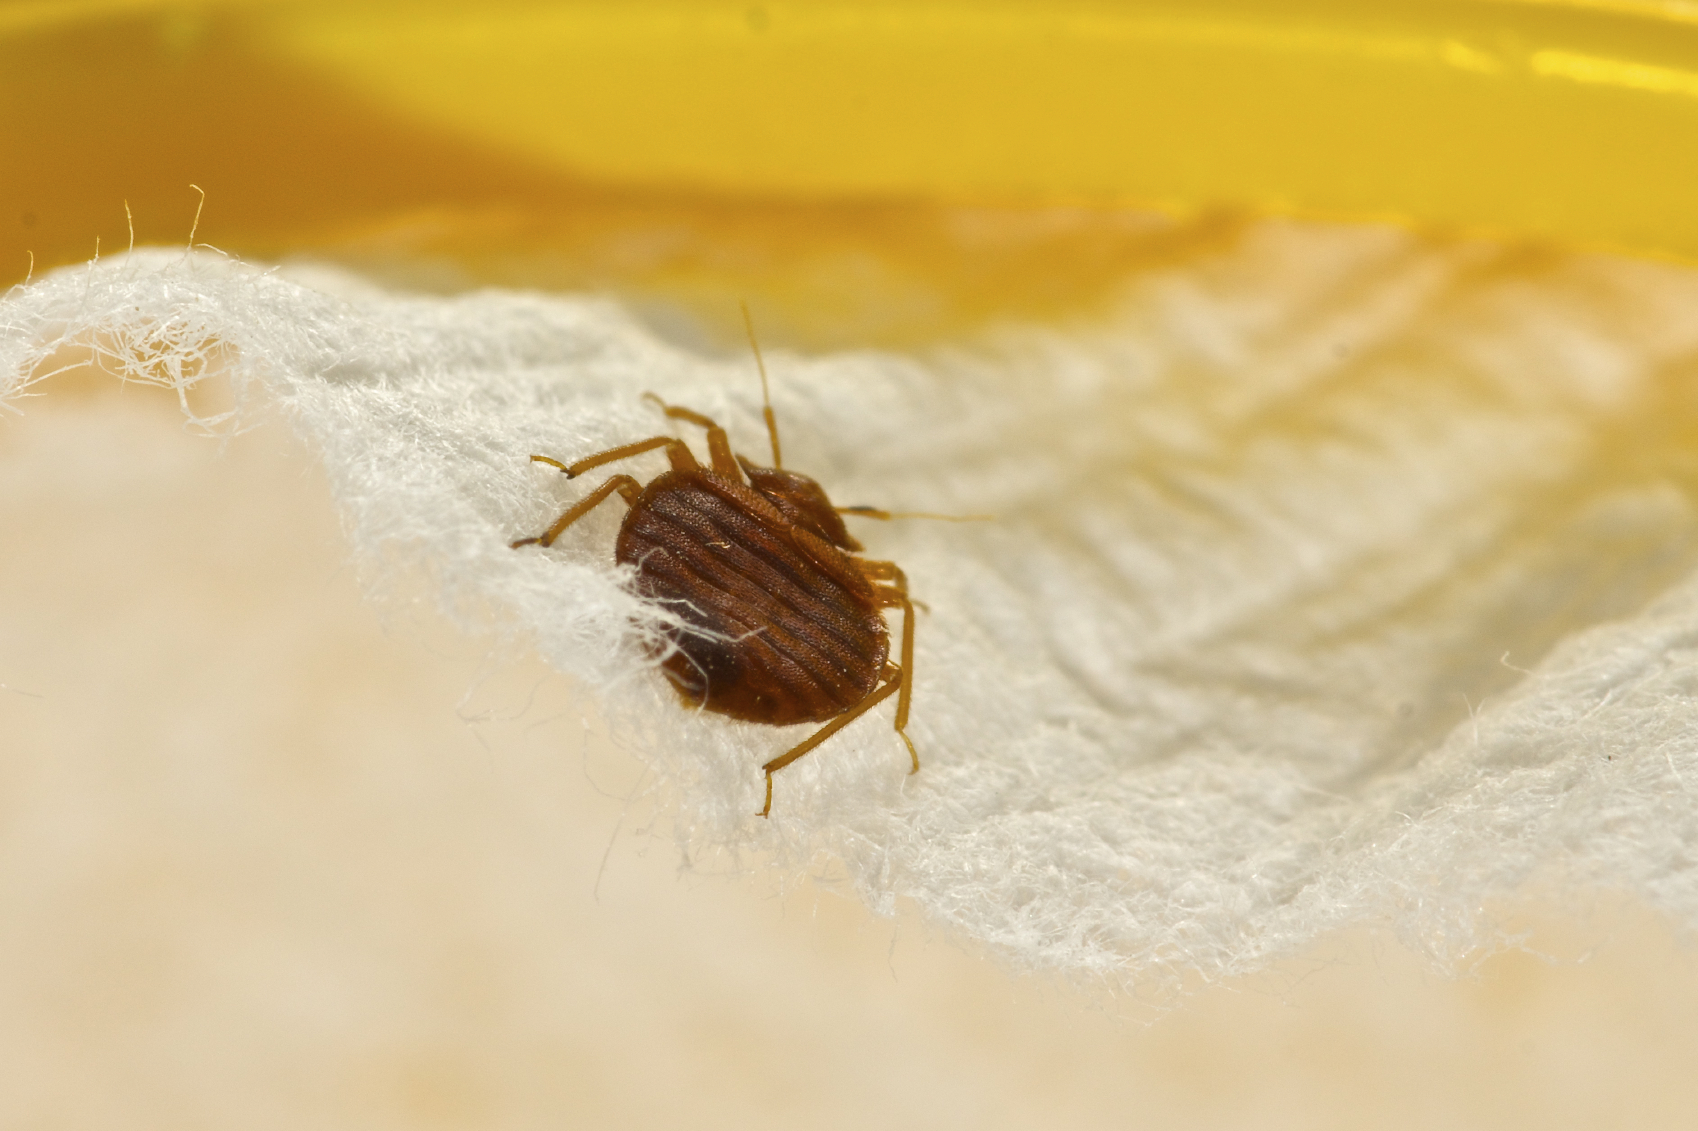 Scientists have discovered bedbugs have developed a defense against chemical sprays. Here's how to kill them naturally without toxic insecticides.